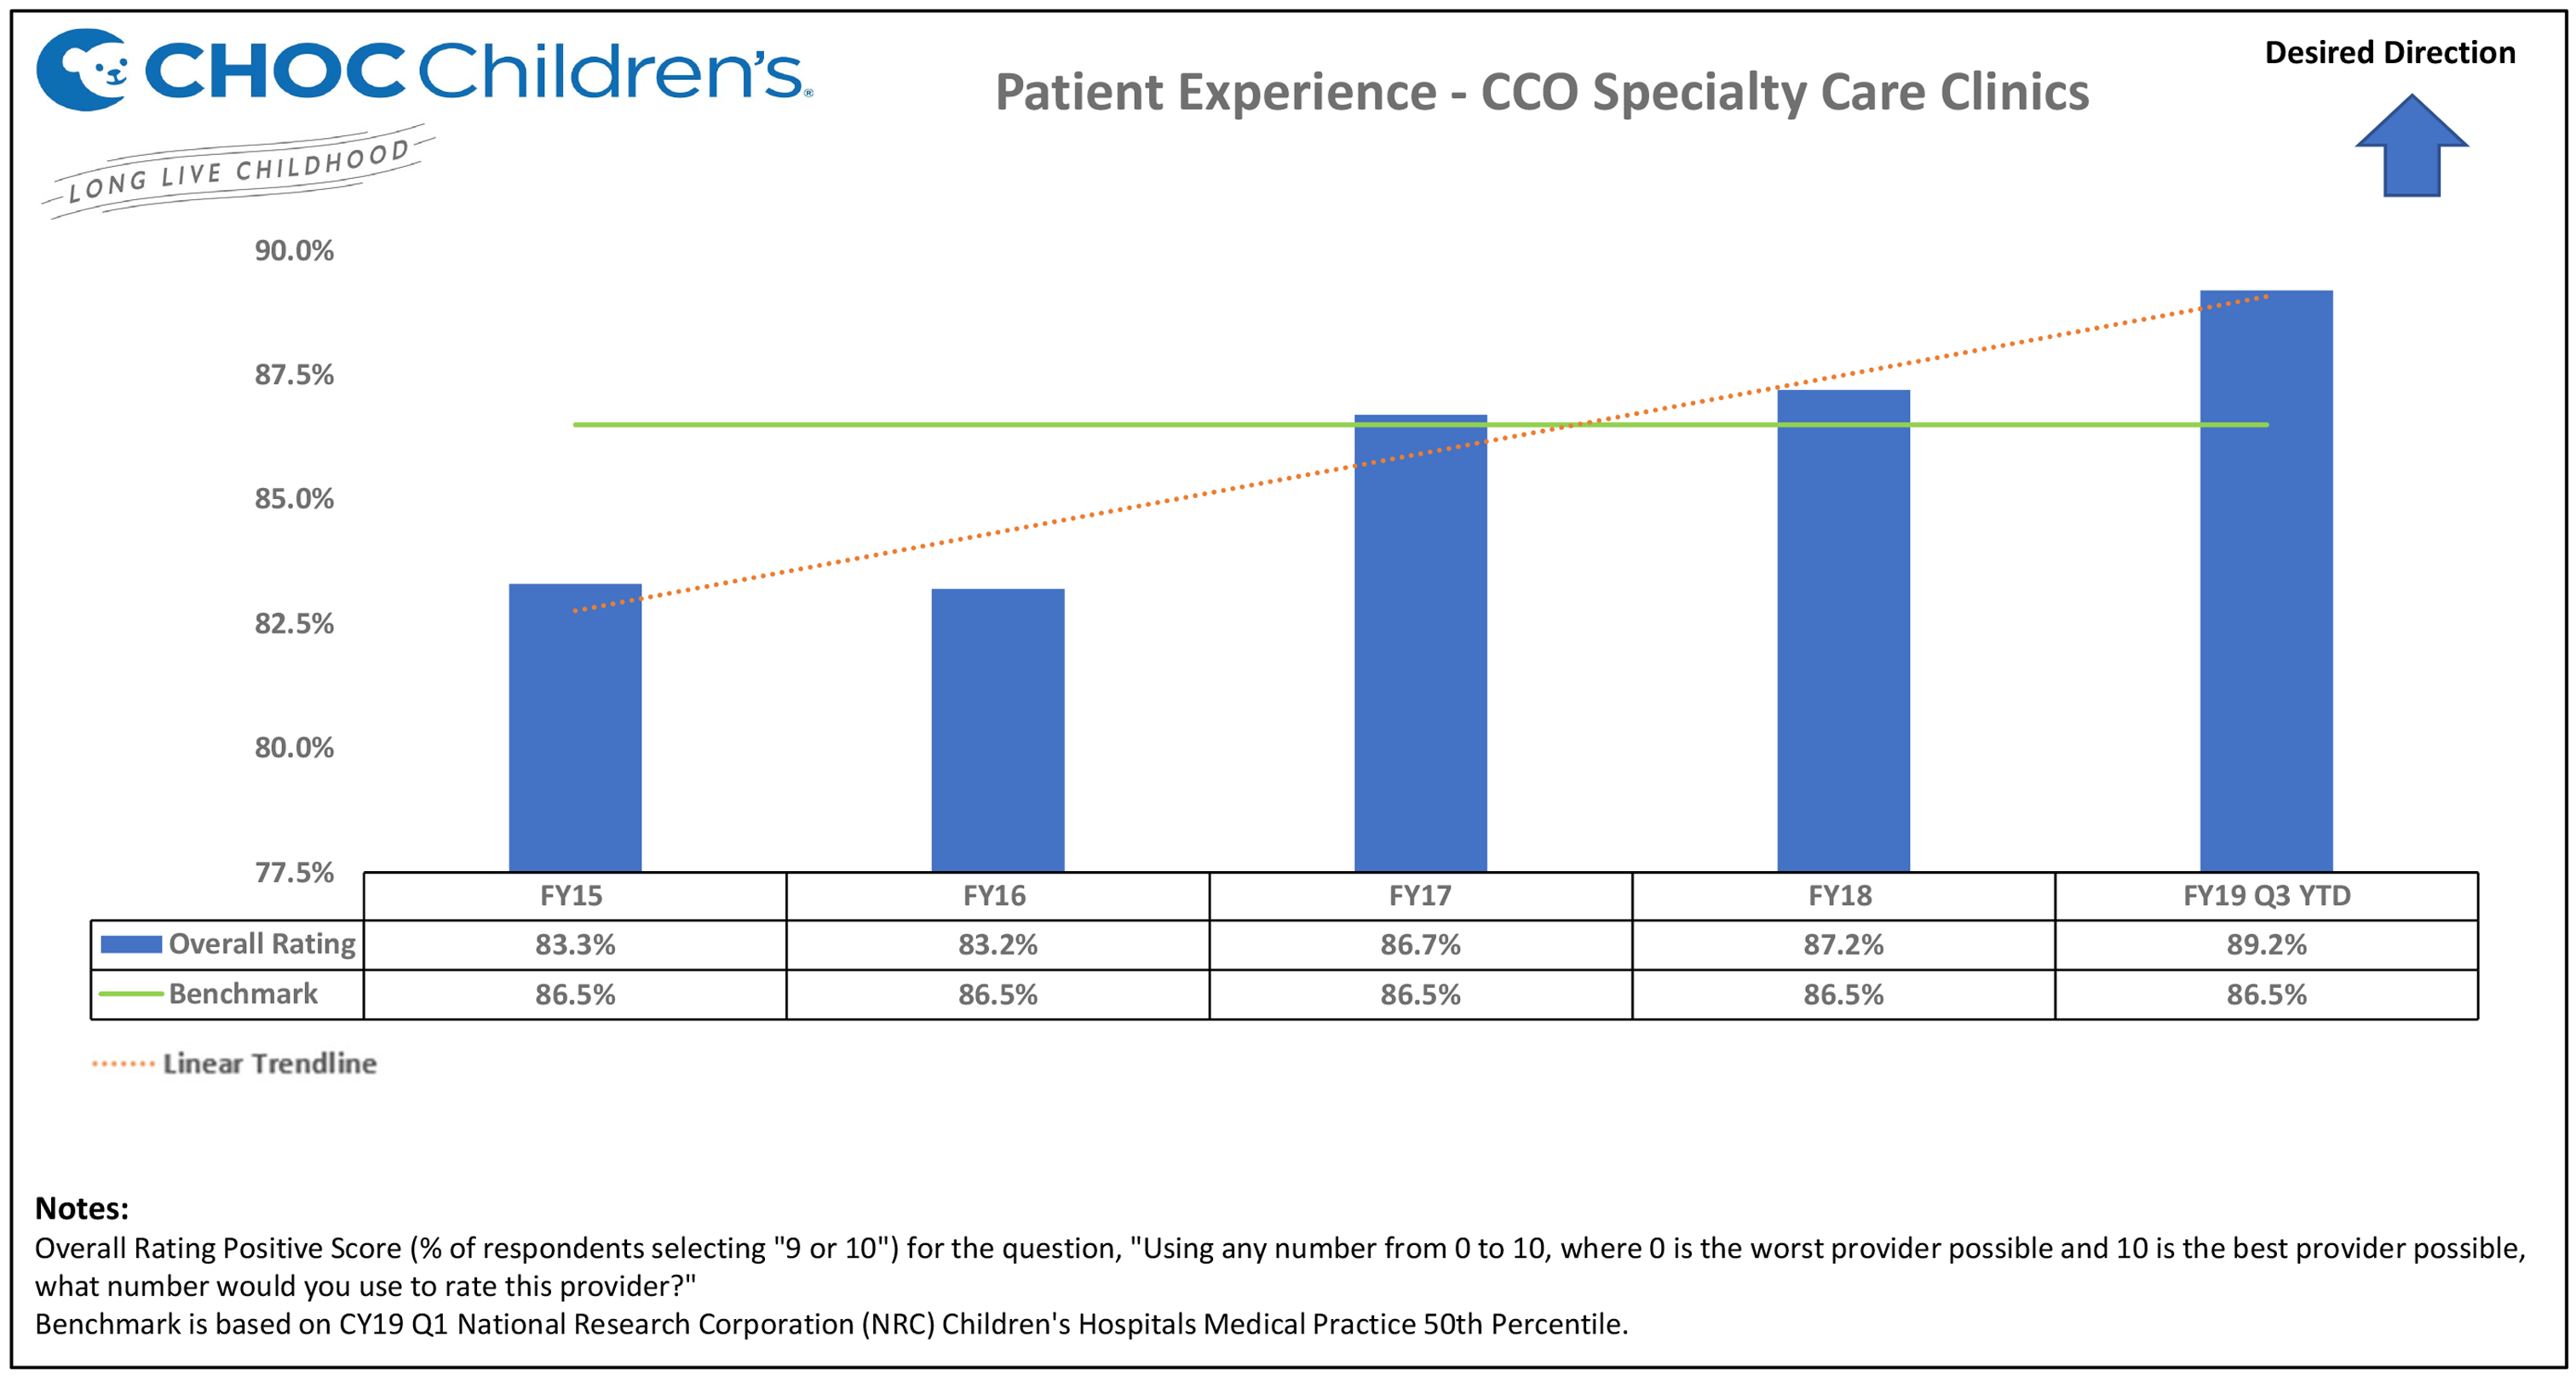 Patient Experience - CCO Specialty Care Clinics